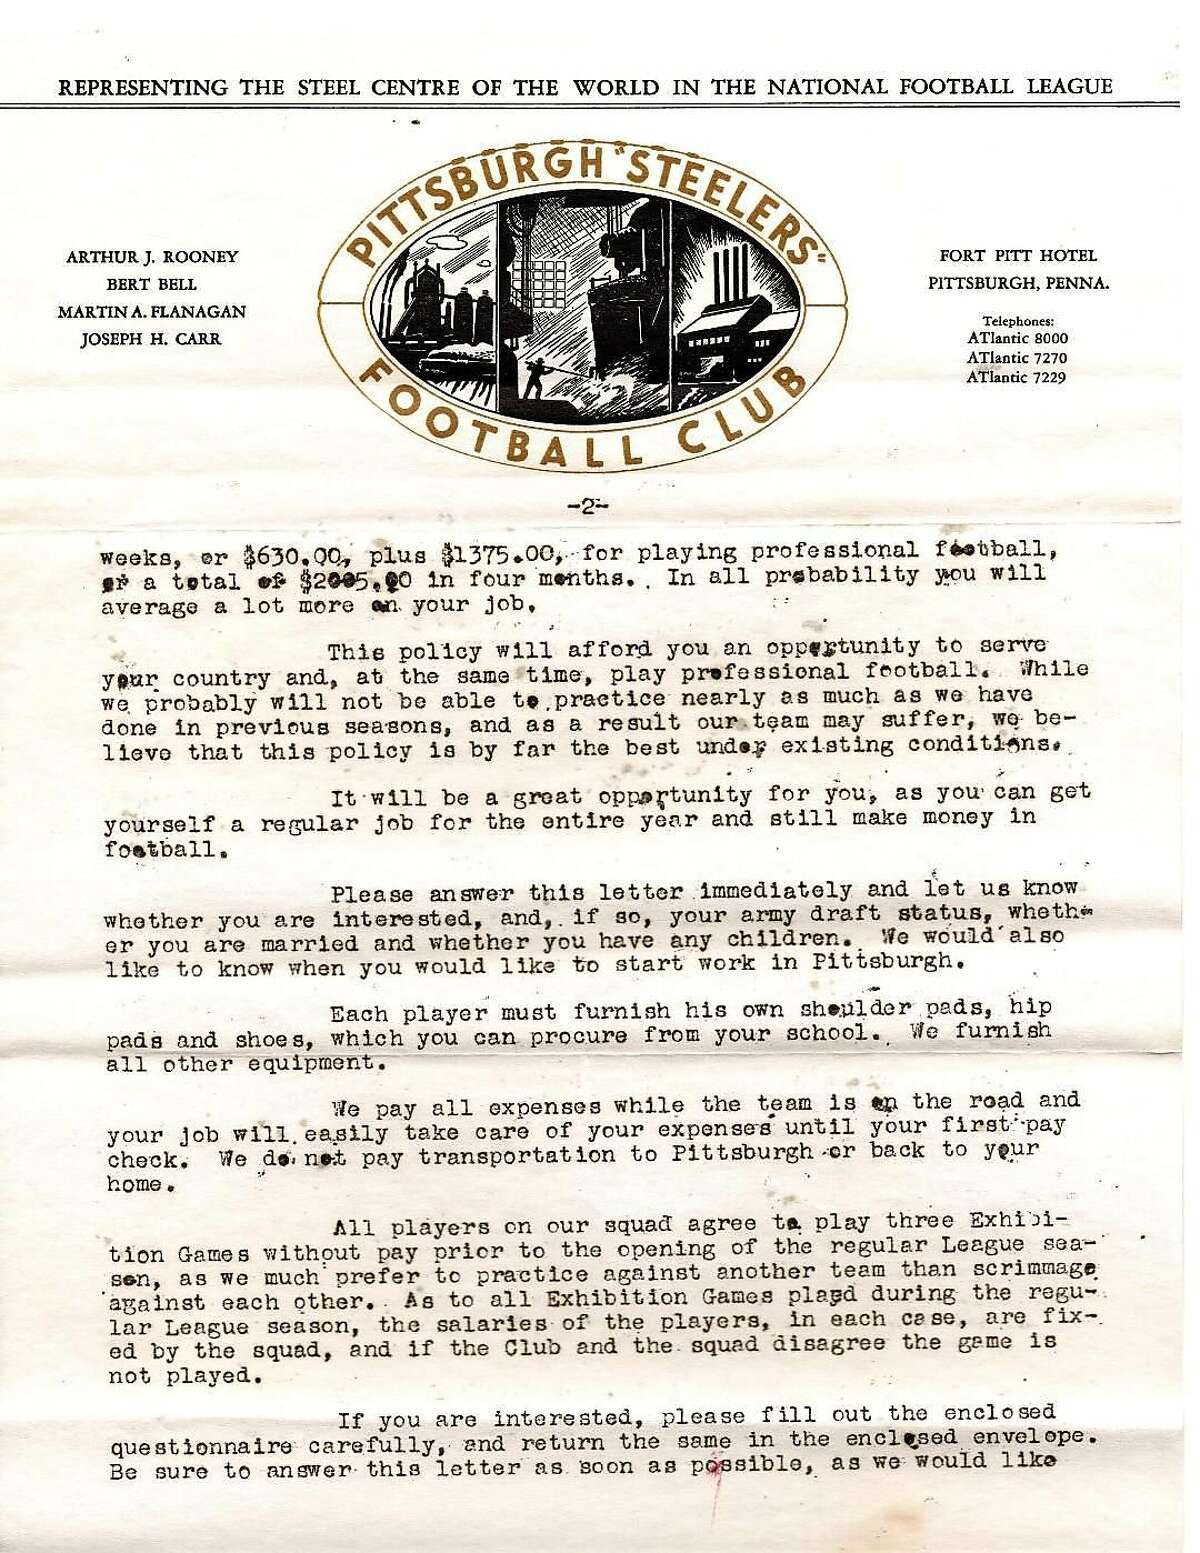 The second page of the letter Ken Casanega received from the Steelers informing him they'd selected him in the 1942 NFL draft.